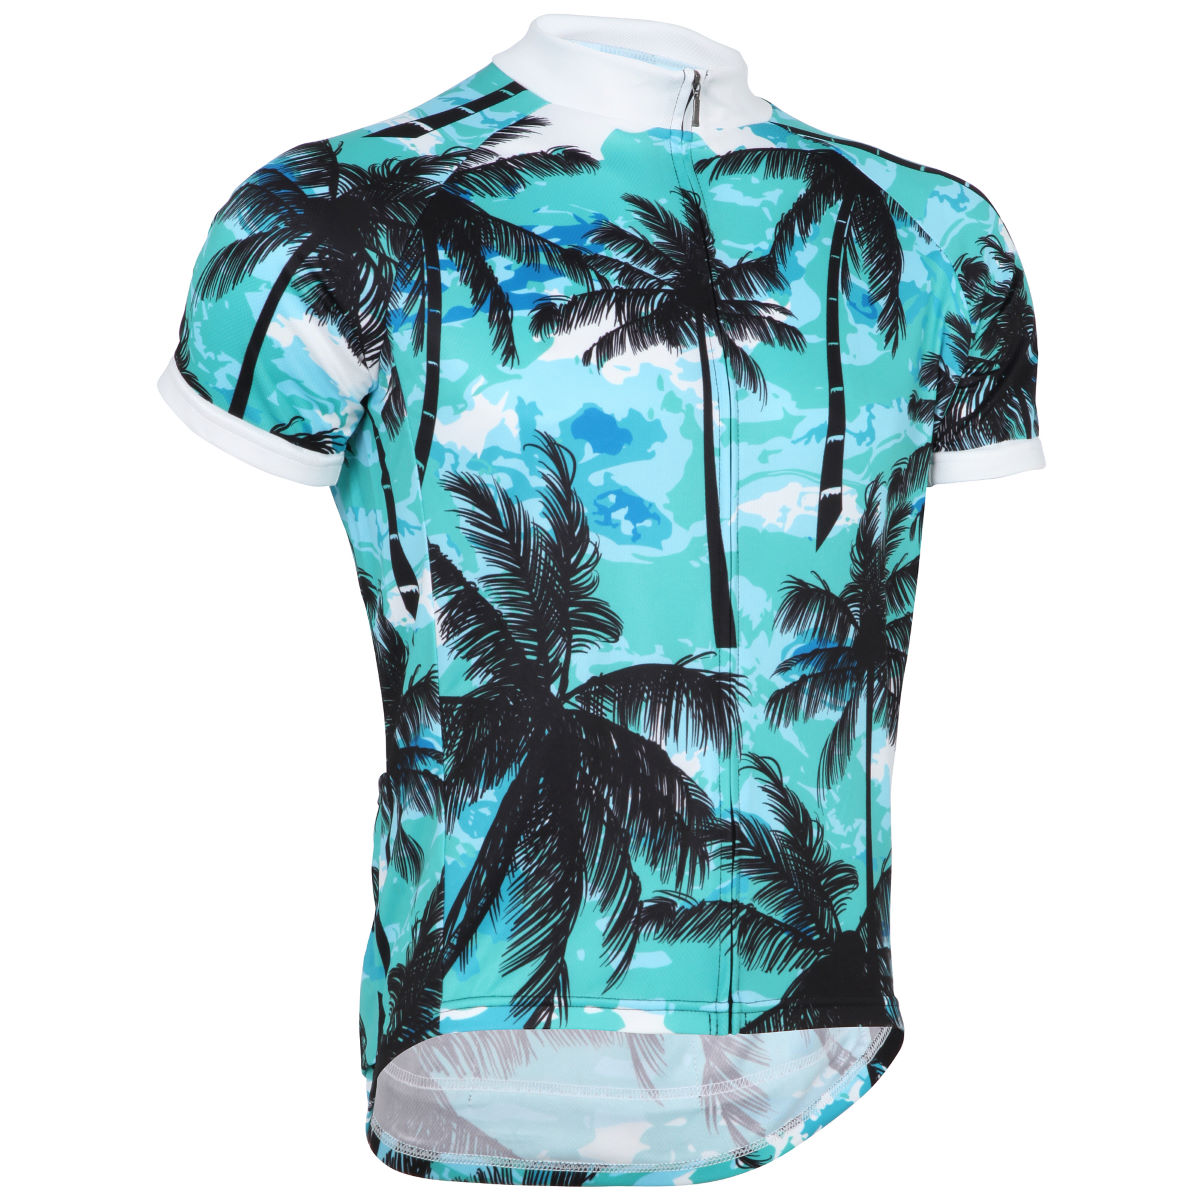 Maillot Primal Maui Wowi - Small Vert